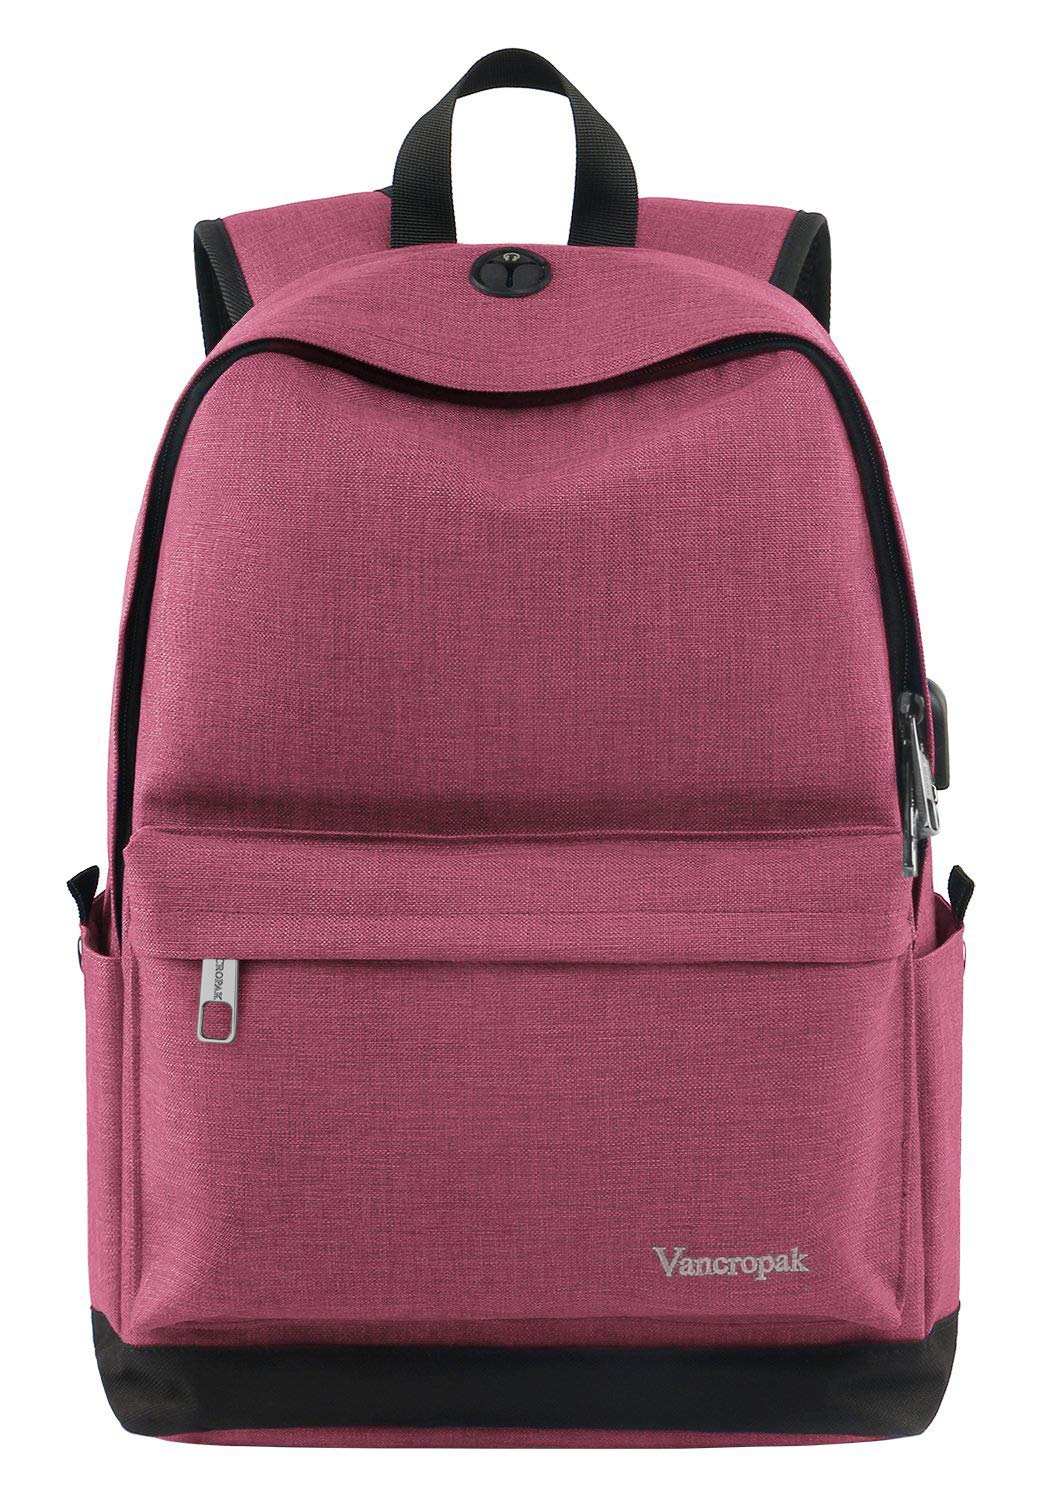 7d47ec3be034 Vancropak Student Backpack for Women, College High School Laptop Backpack  with Charger for Men Girls Boys, Water Resistant Canvas Bookbag Weekend Bag  ...